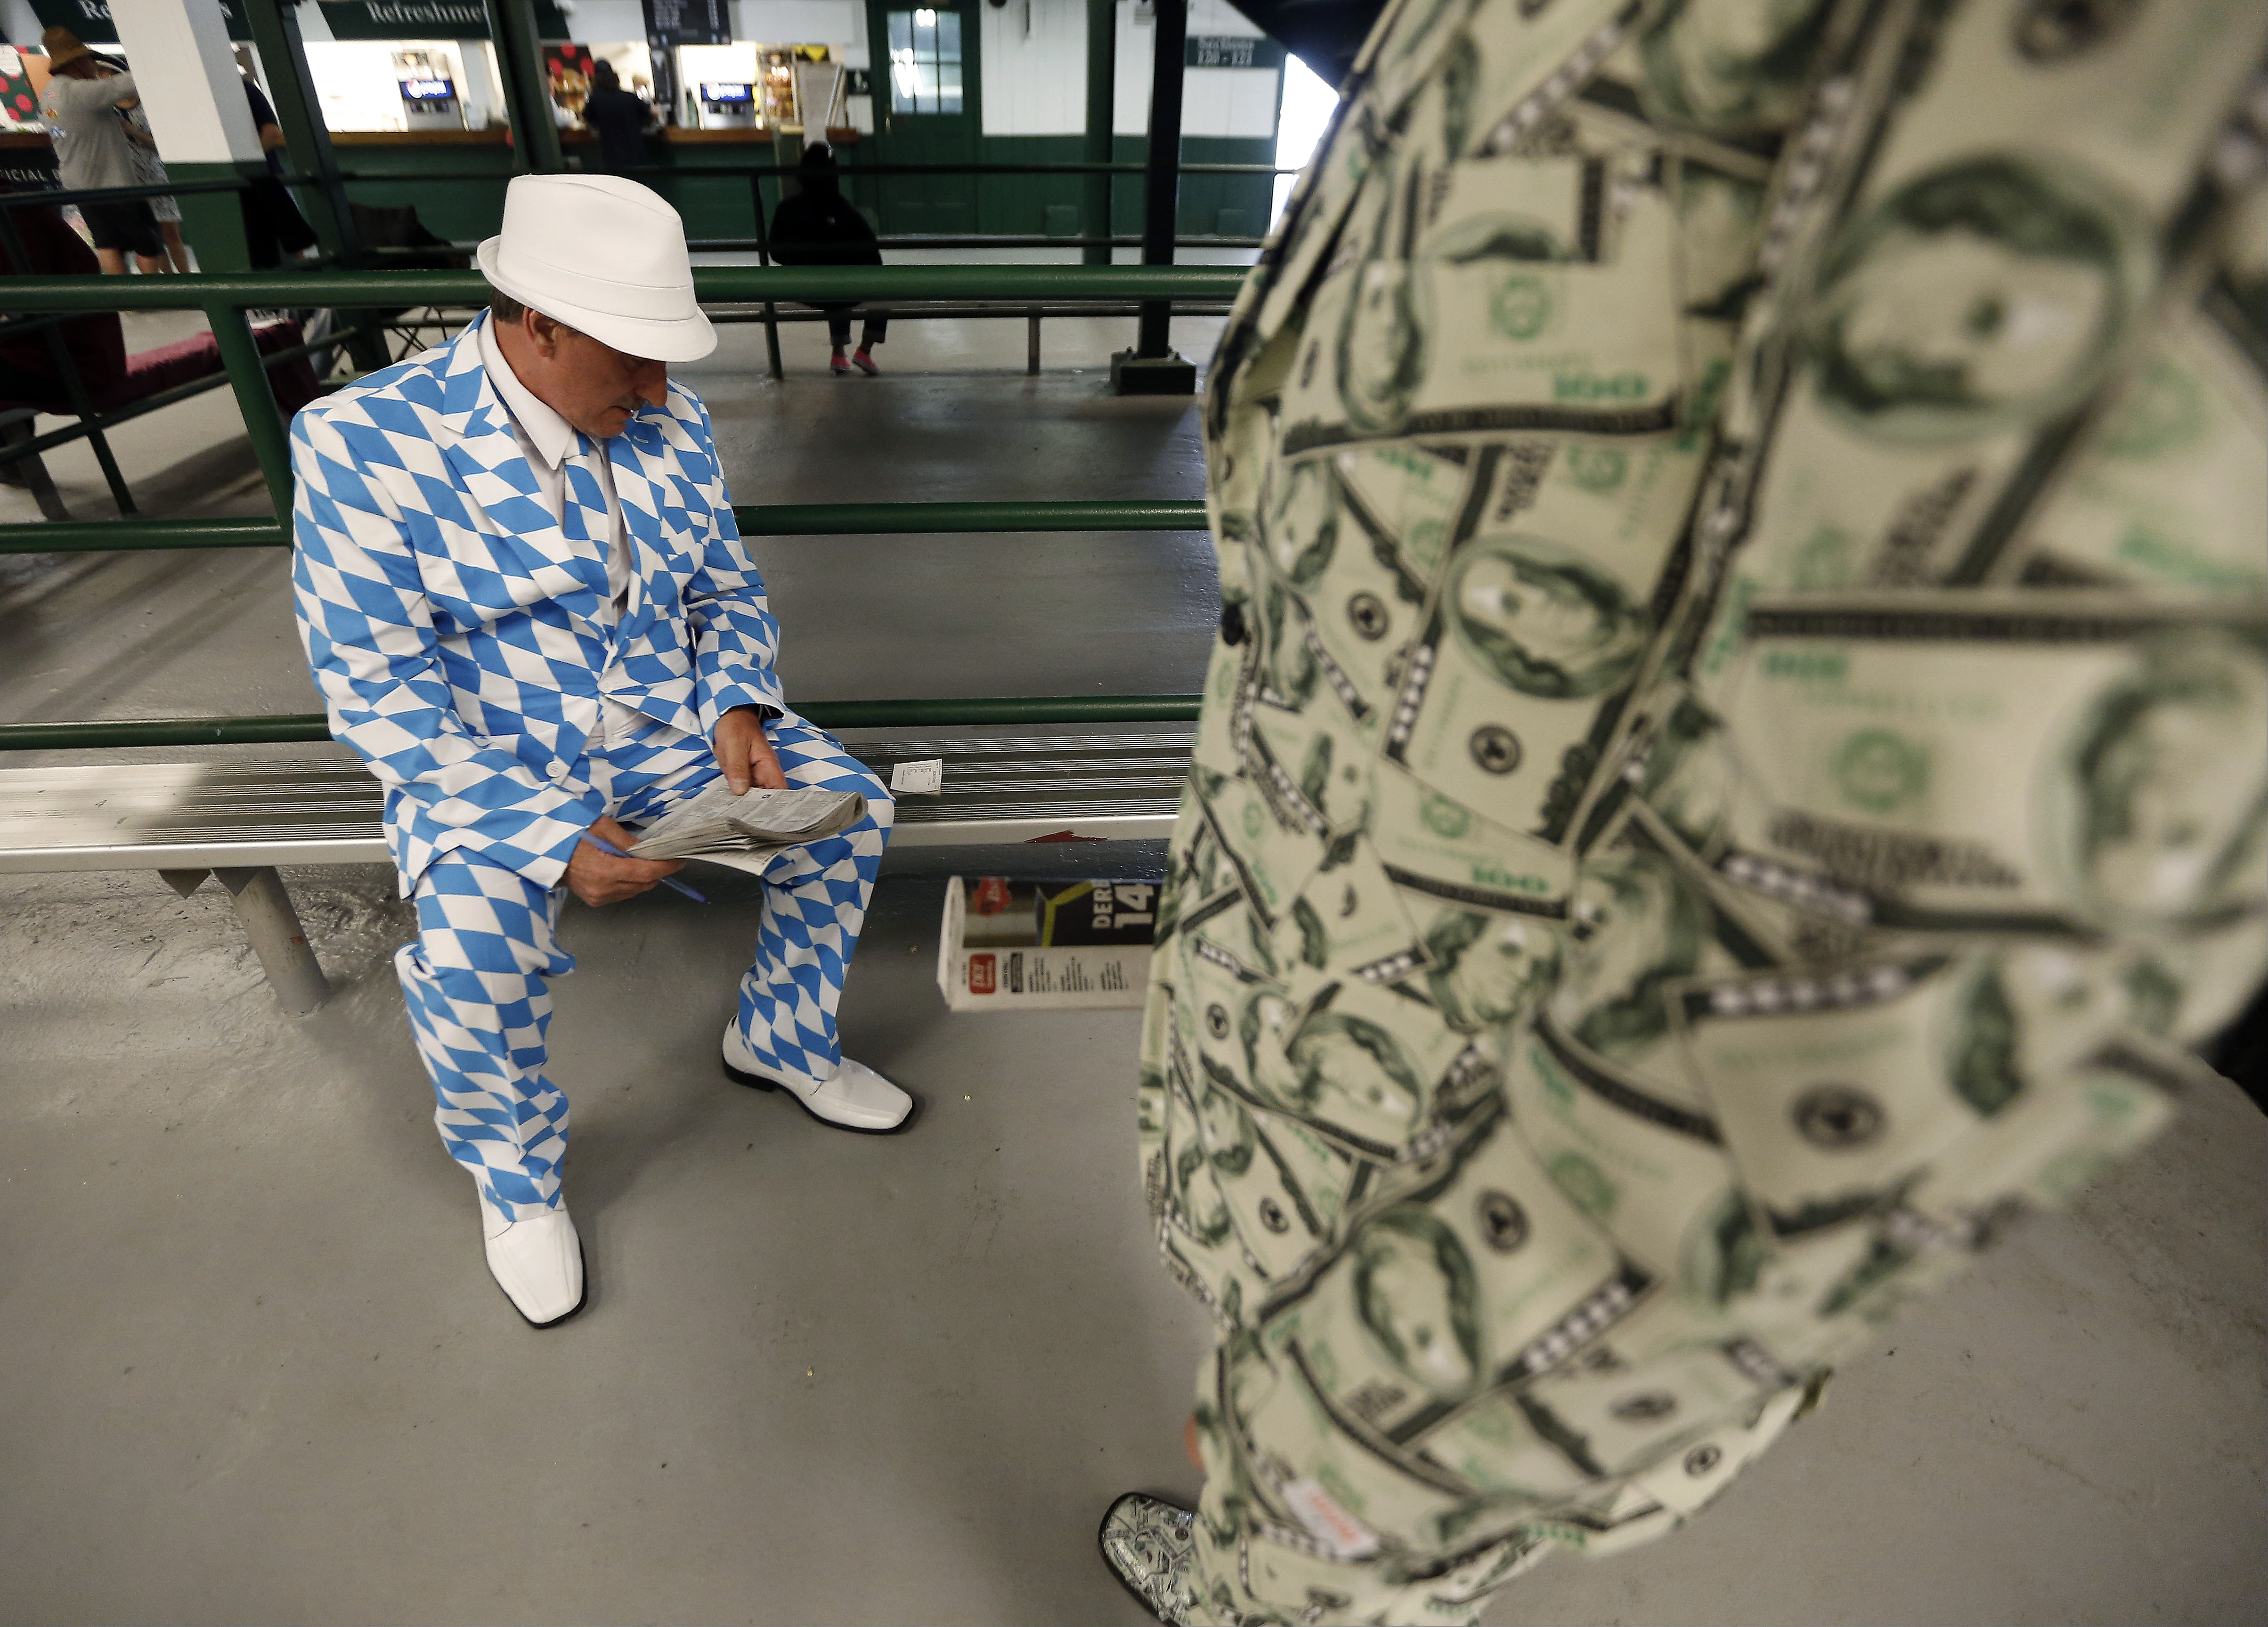 Michael Parrett, left, and Dustin Doerflinger look over their bets before the 141st running of the Kentucky Derby horse race at Churchill Downs Saturday, May 2, 2015, in Louisville, Ky. (AP Photo/Charlie Riedel)